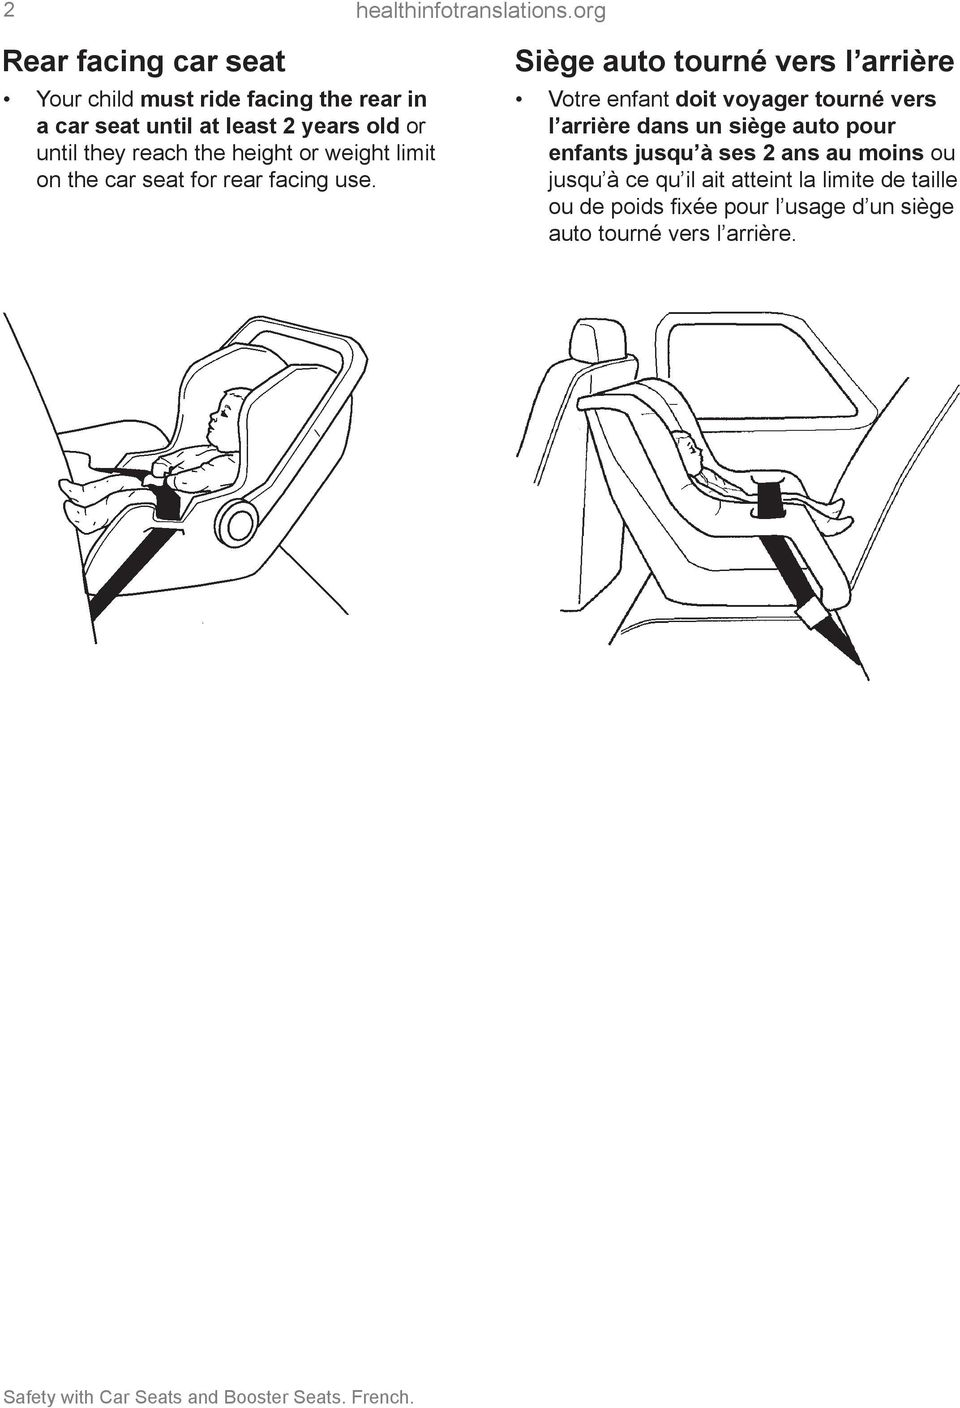 reach the height or weight limit on the car seat for rear facing use.